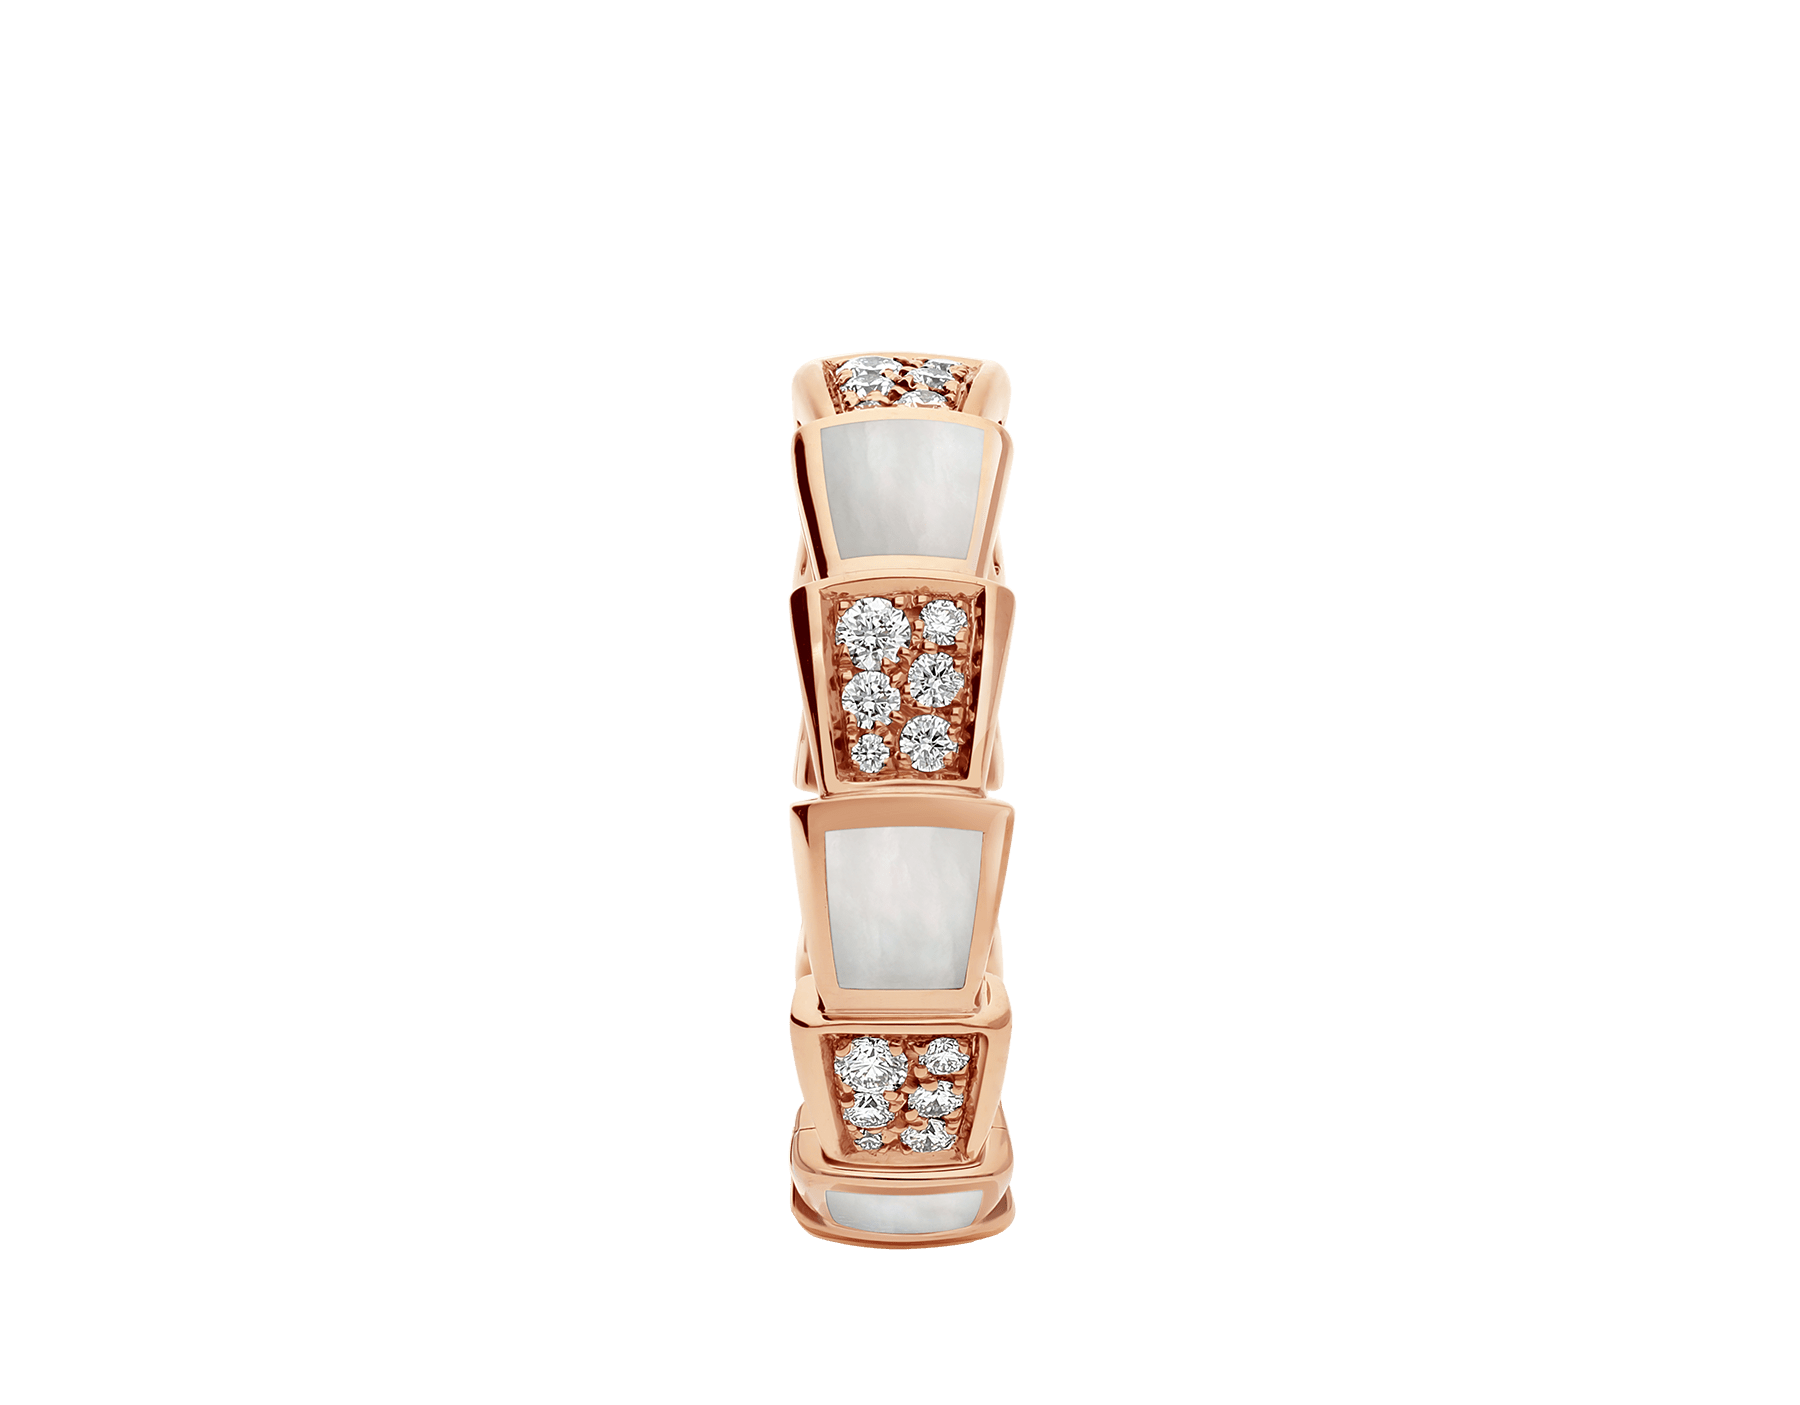 Serpenti Viper band ring in 18 kt rose gold, set with mother of pearl elements and pavé diamonds. AN858043 image 2